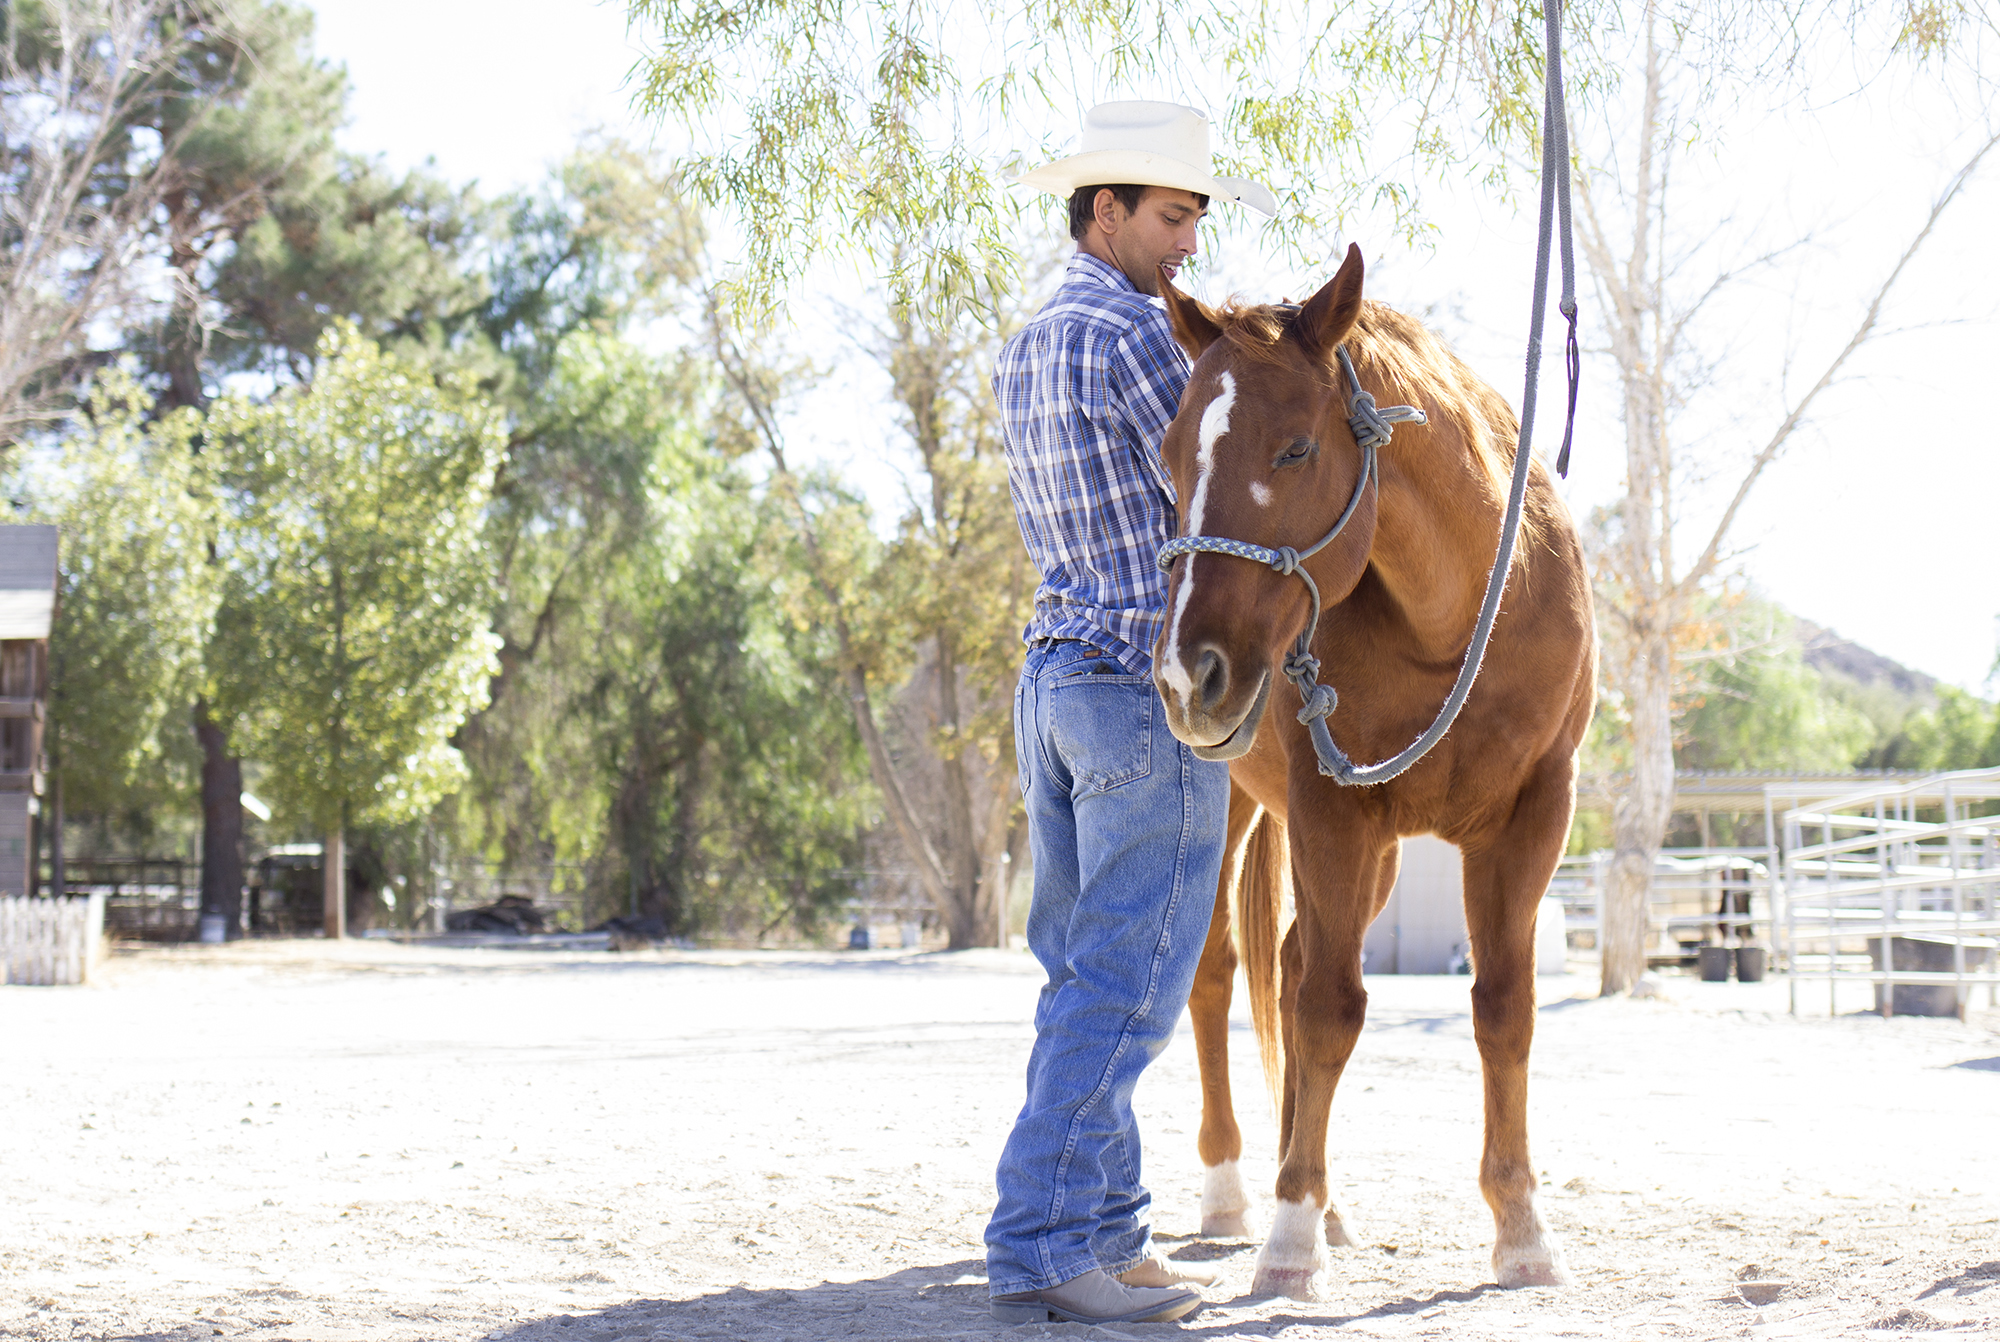 Student works towards helping sick horses